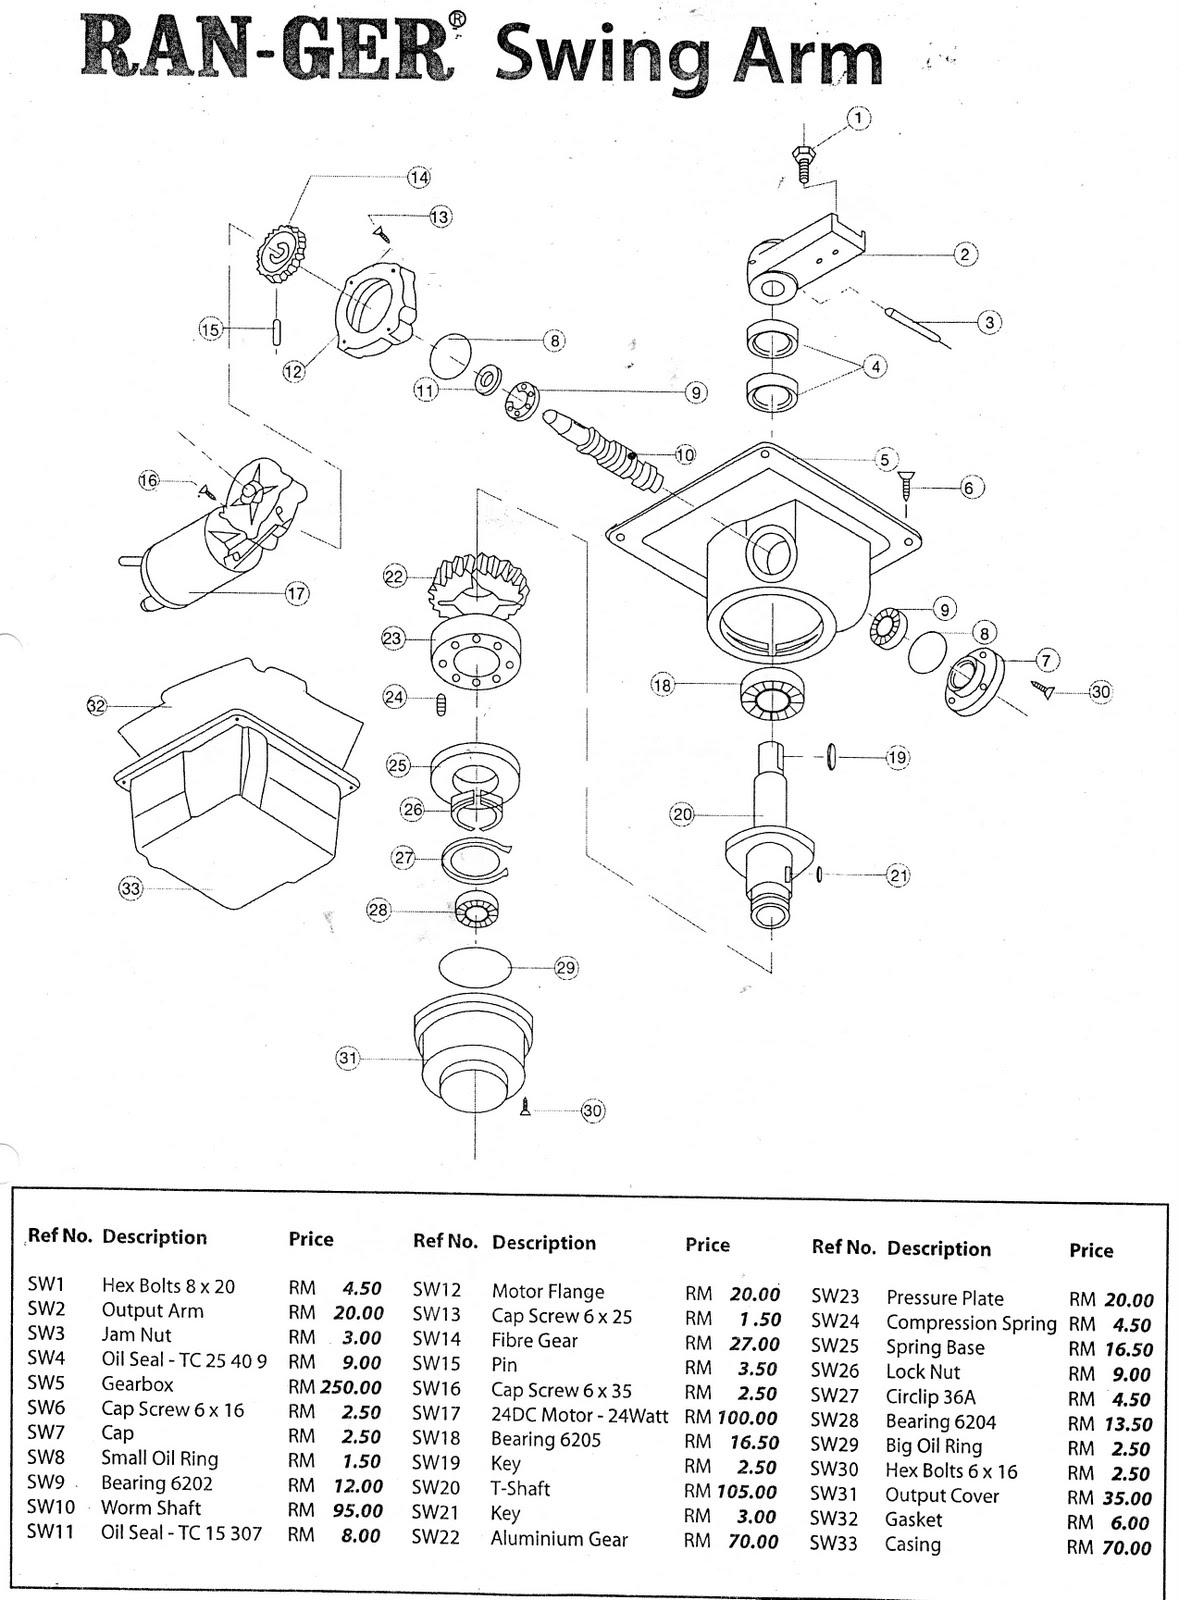 Autogate malaysia repairs spare parts readily available for underground systems parts list for gate systems ranger good 1 signal mag and west gate are readily available as per the diagram below cheapraybanclubmaster